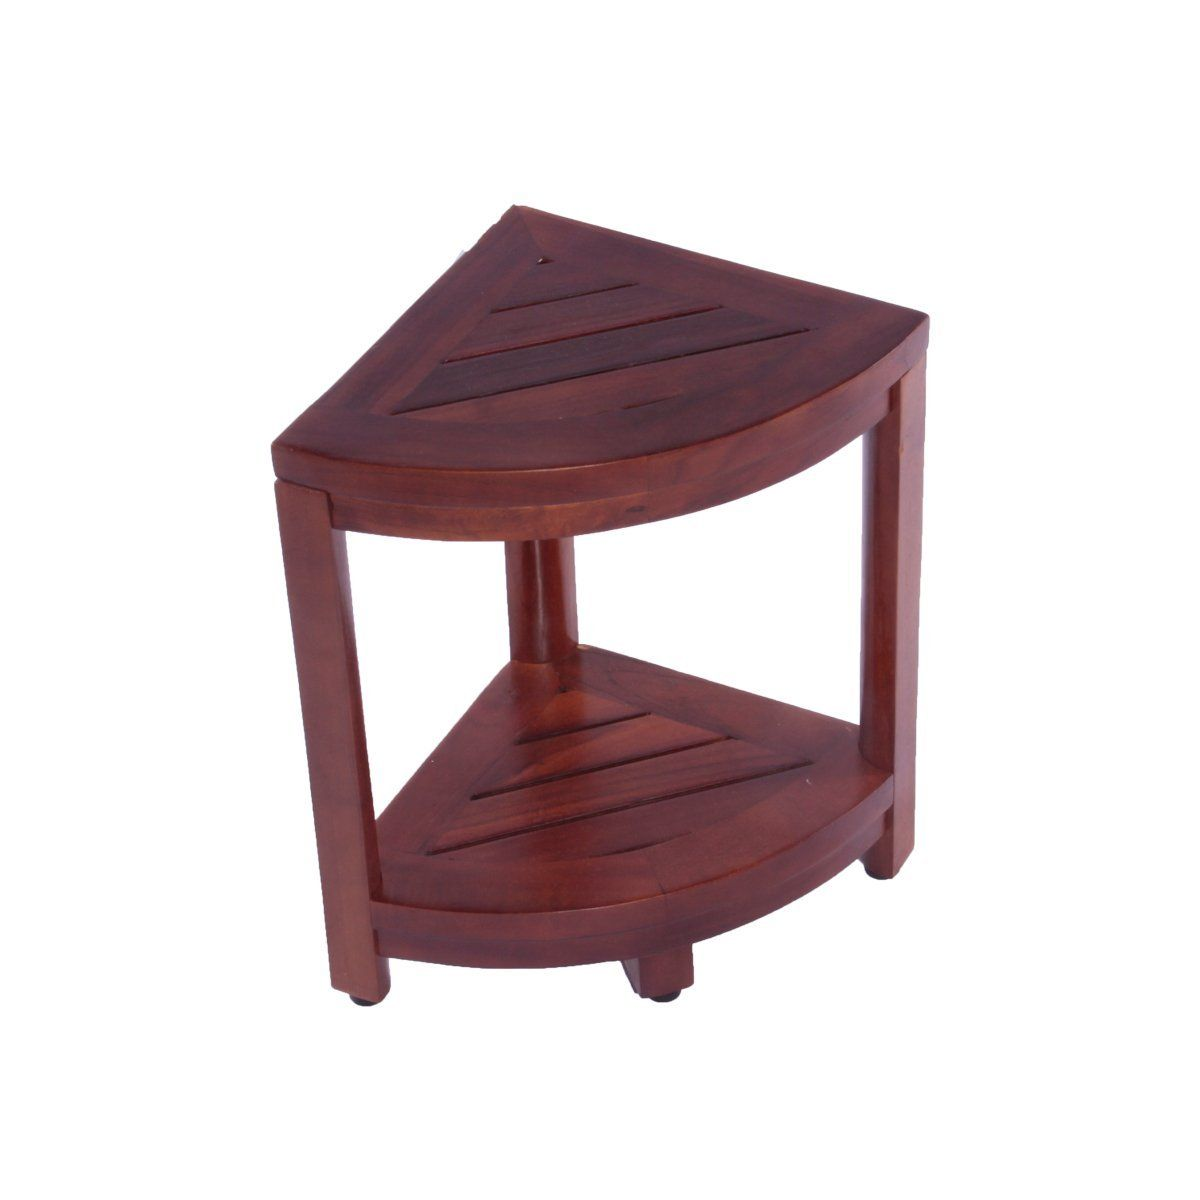 13 X 13 5 Teak Corner Shower Bench With Fan Design Top With